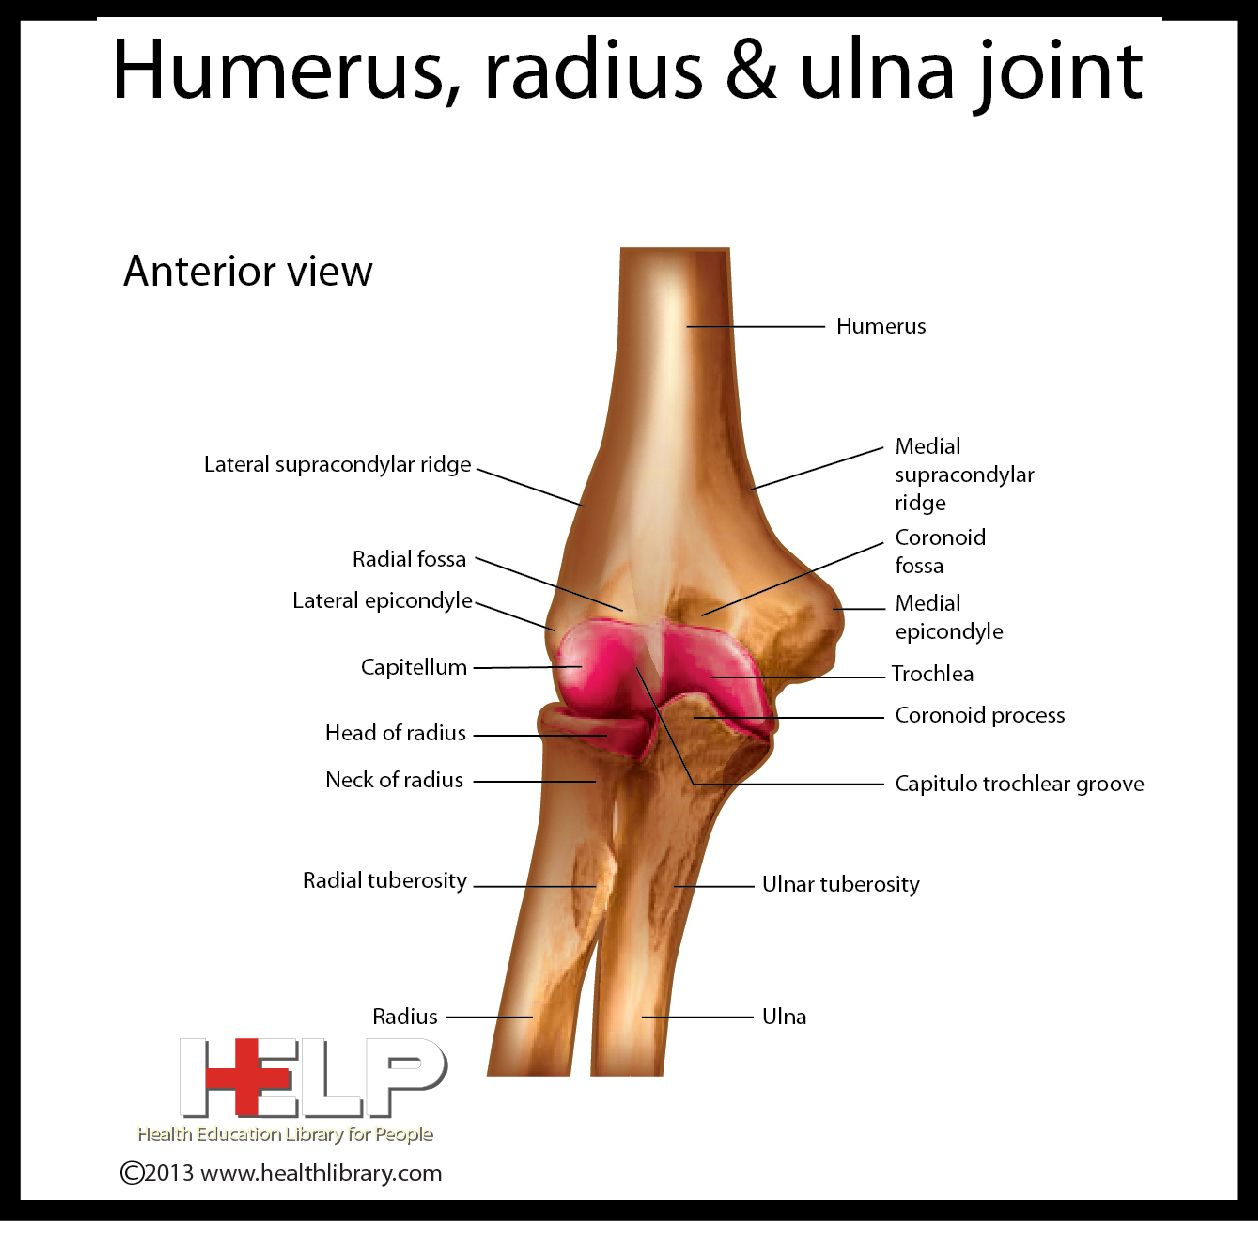 Humerus, radius and ulna joint...capitulum is spelled wrong ...